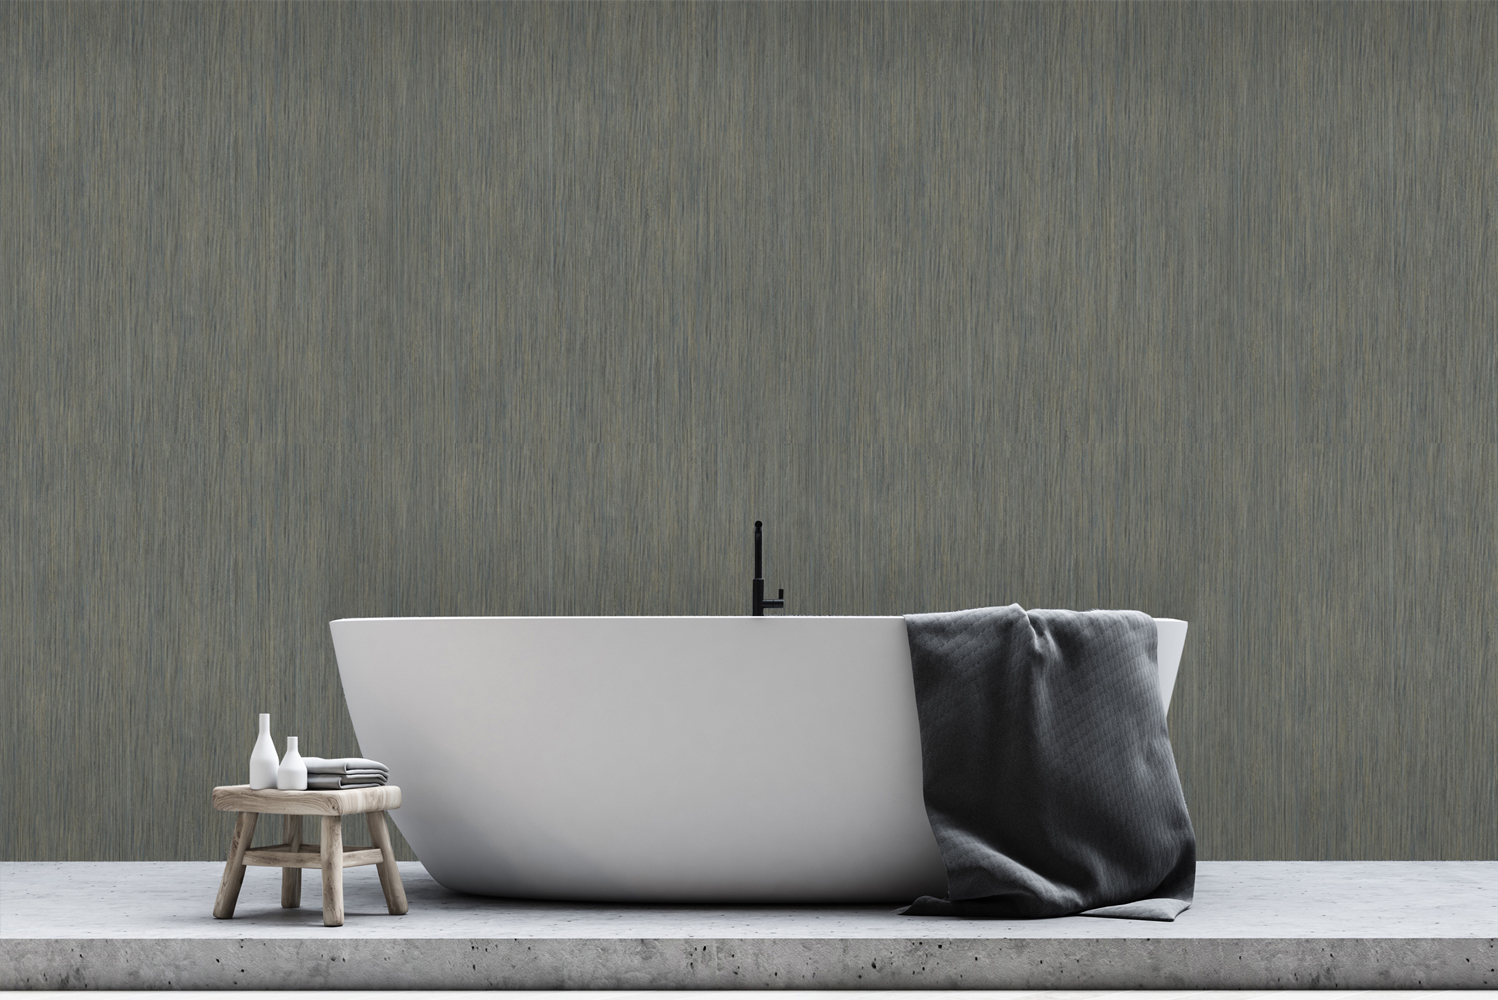 The Avant-Garde collection embodies the look and feel of Wood, metal and stone in a cleanable wallcovering.